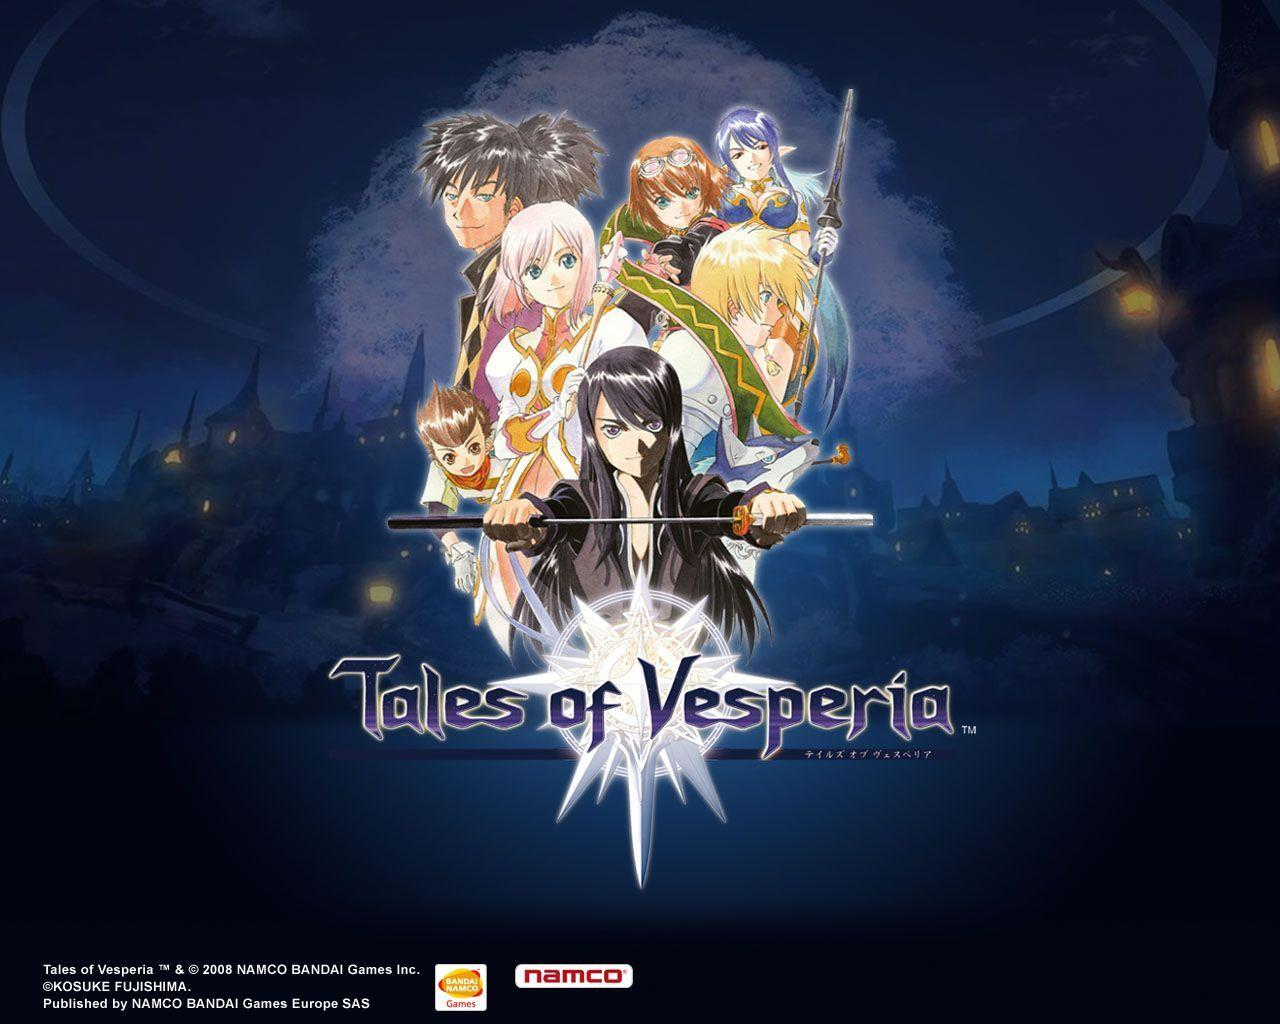 70 Tales Of Vesperia Wallpaper On Wallpapersafari